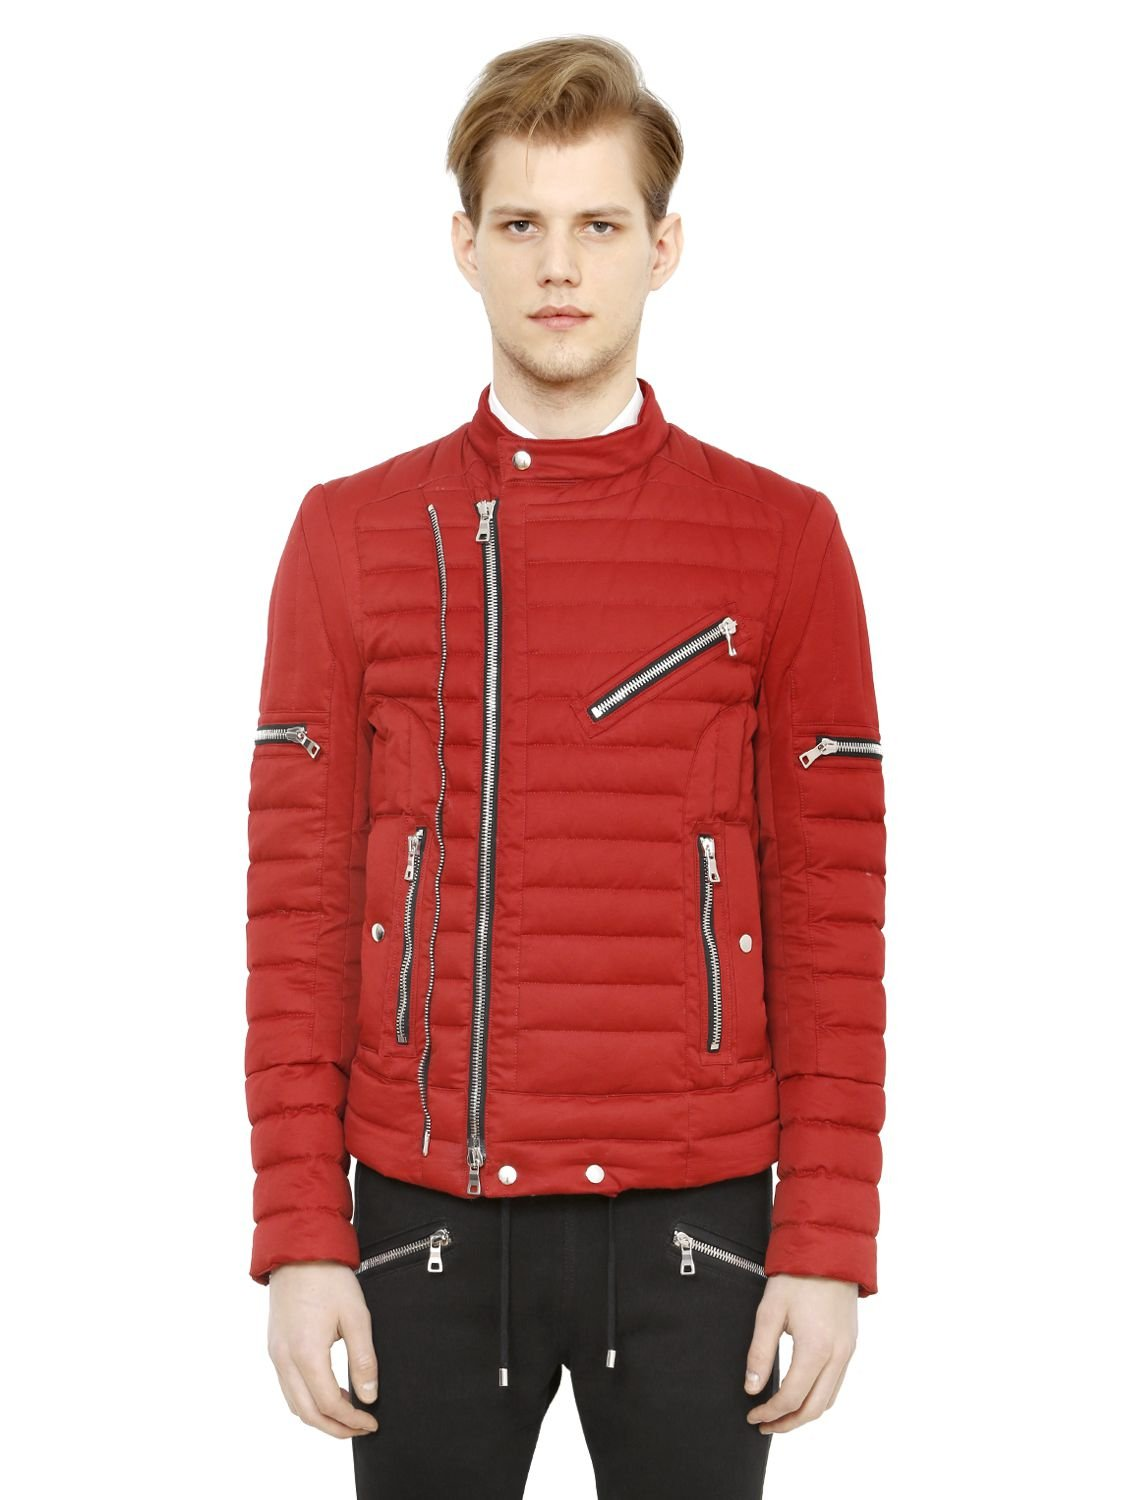 Buy Balmain clothing & accessories and get Free Shipping & Returns in USA. Shop online the latest FW18 collection of Balmain for Men on SSENSE and find the perfect clothing & accessories for you among a great selection.